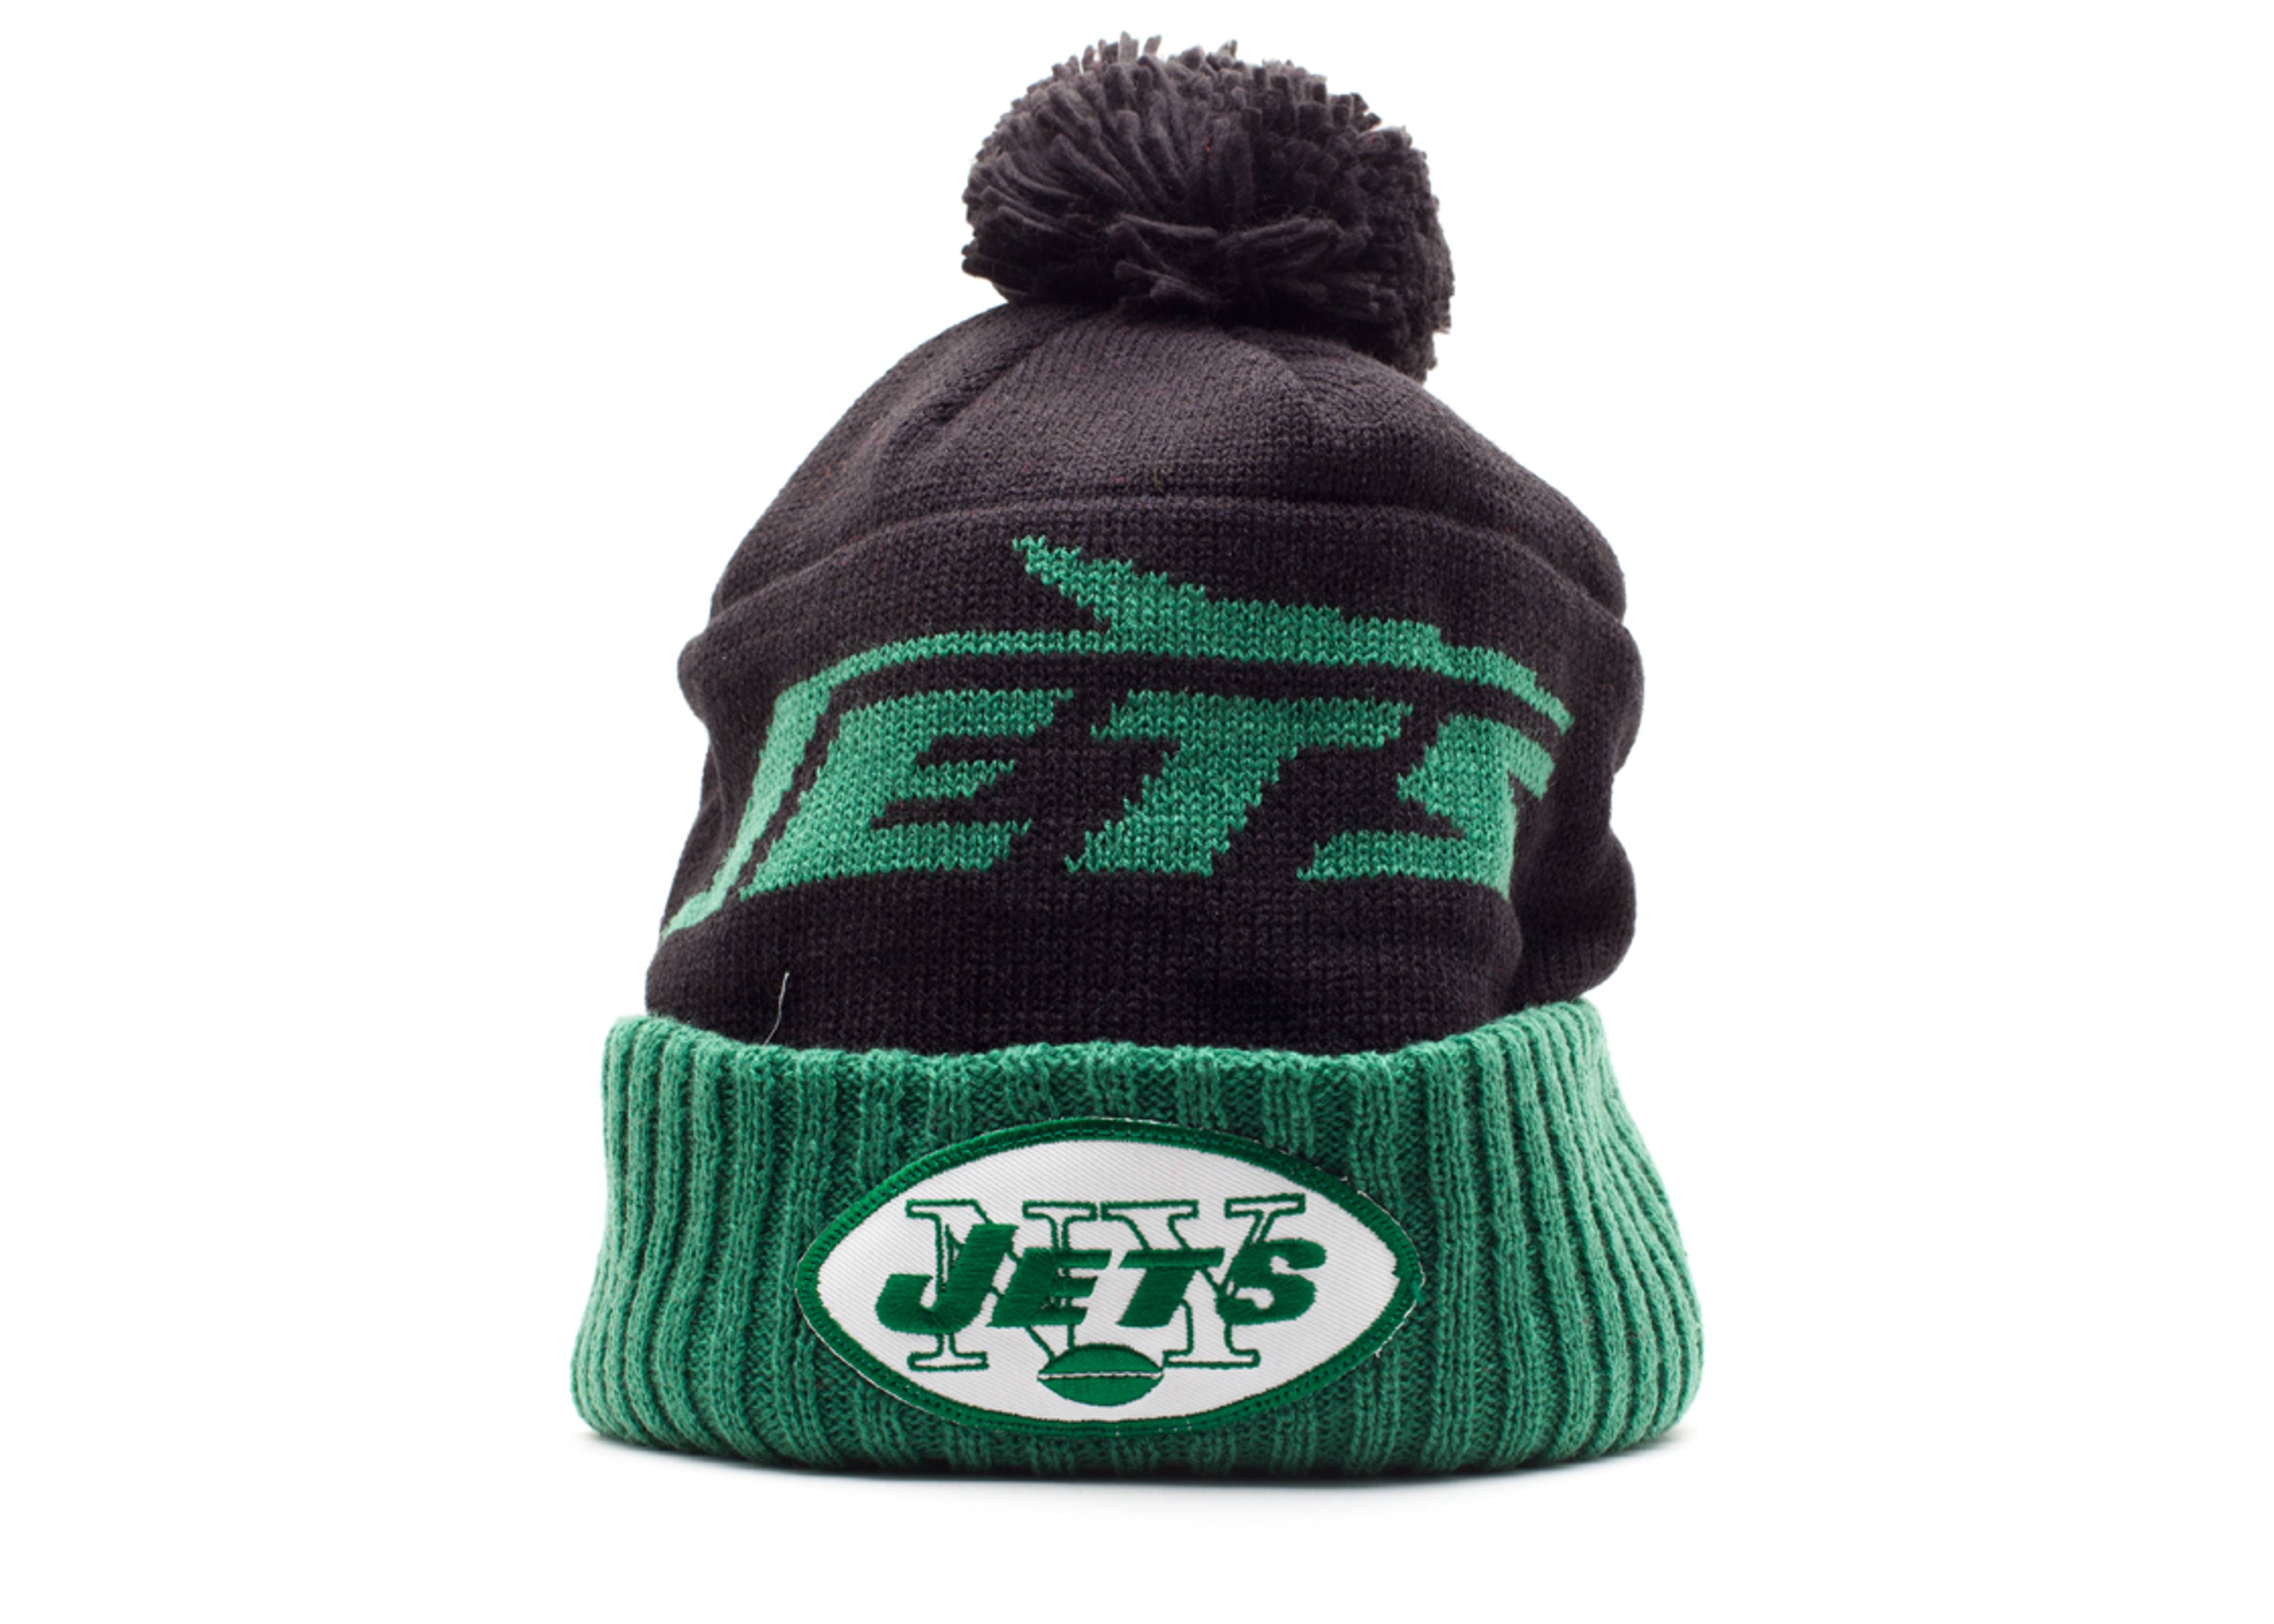 new york jets cuffed pom knit beanie